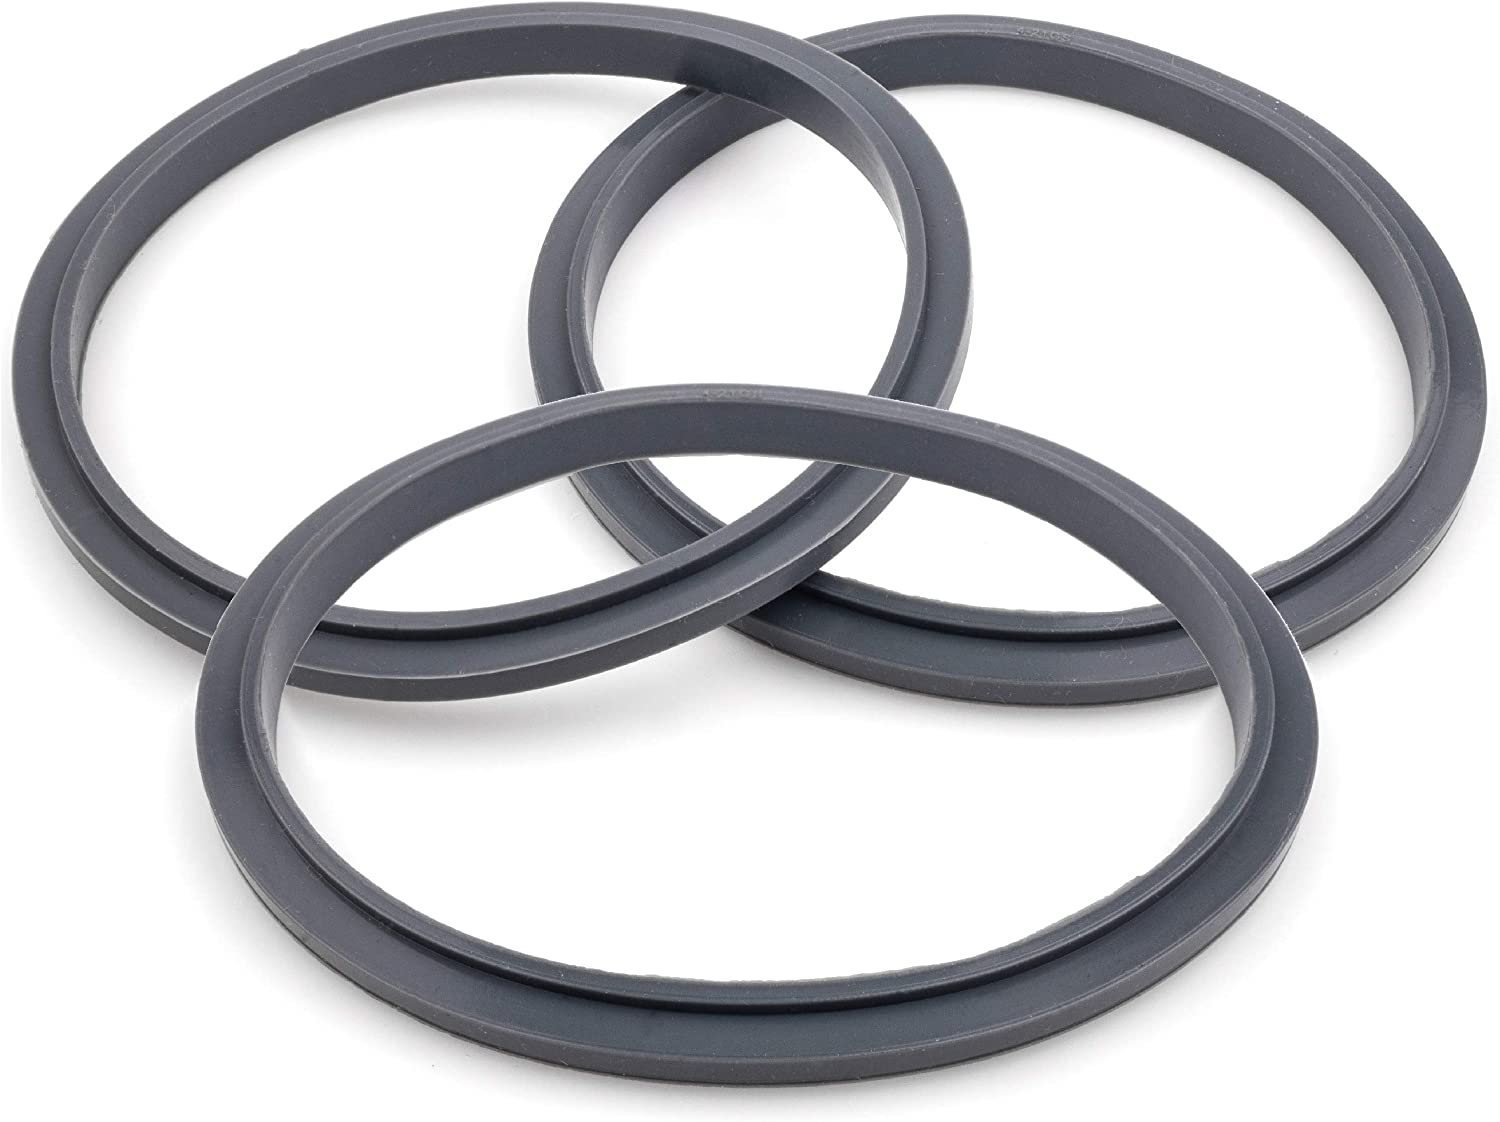 CloudCUP Replacement Parts 3 Pcs Seal Ring Rubber Gasket Replacement Compatible with Nutribullet